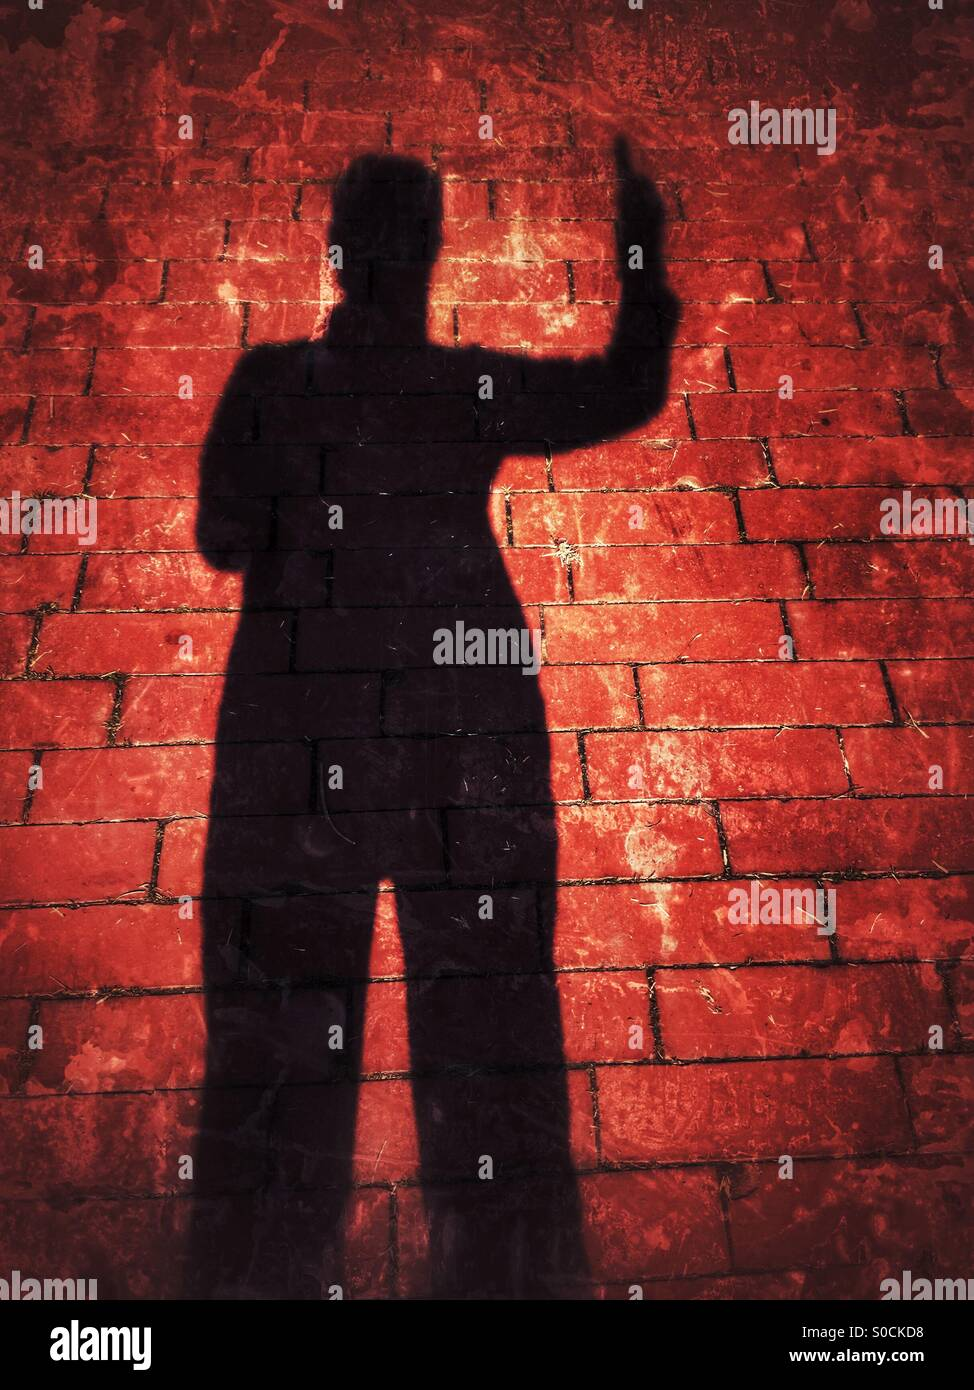 Shadow silhouette selfie of person pointing finger to the sky, over crimson brick pavement, with grunge texture - Stock Image